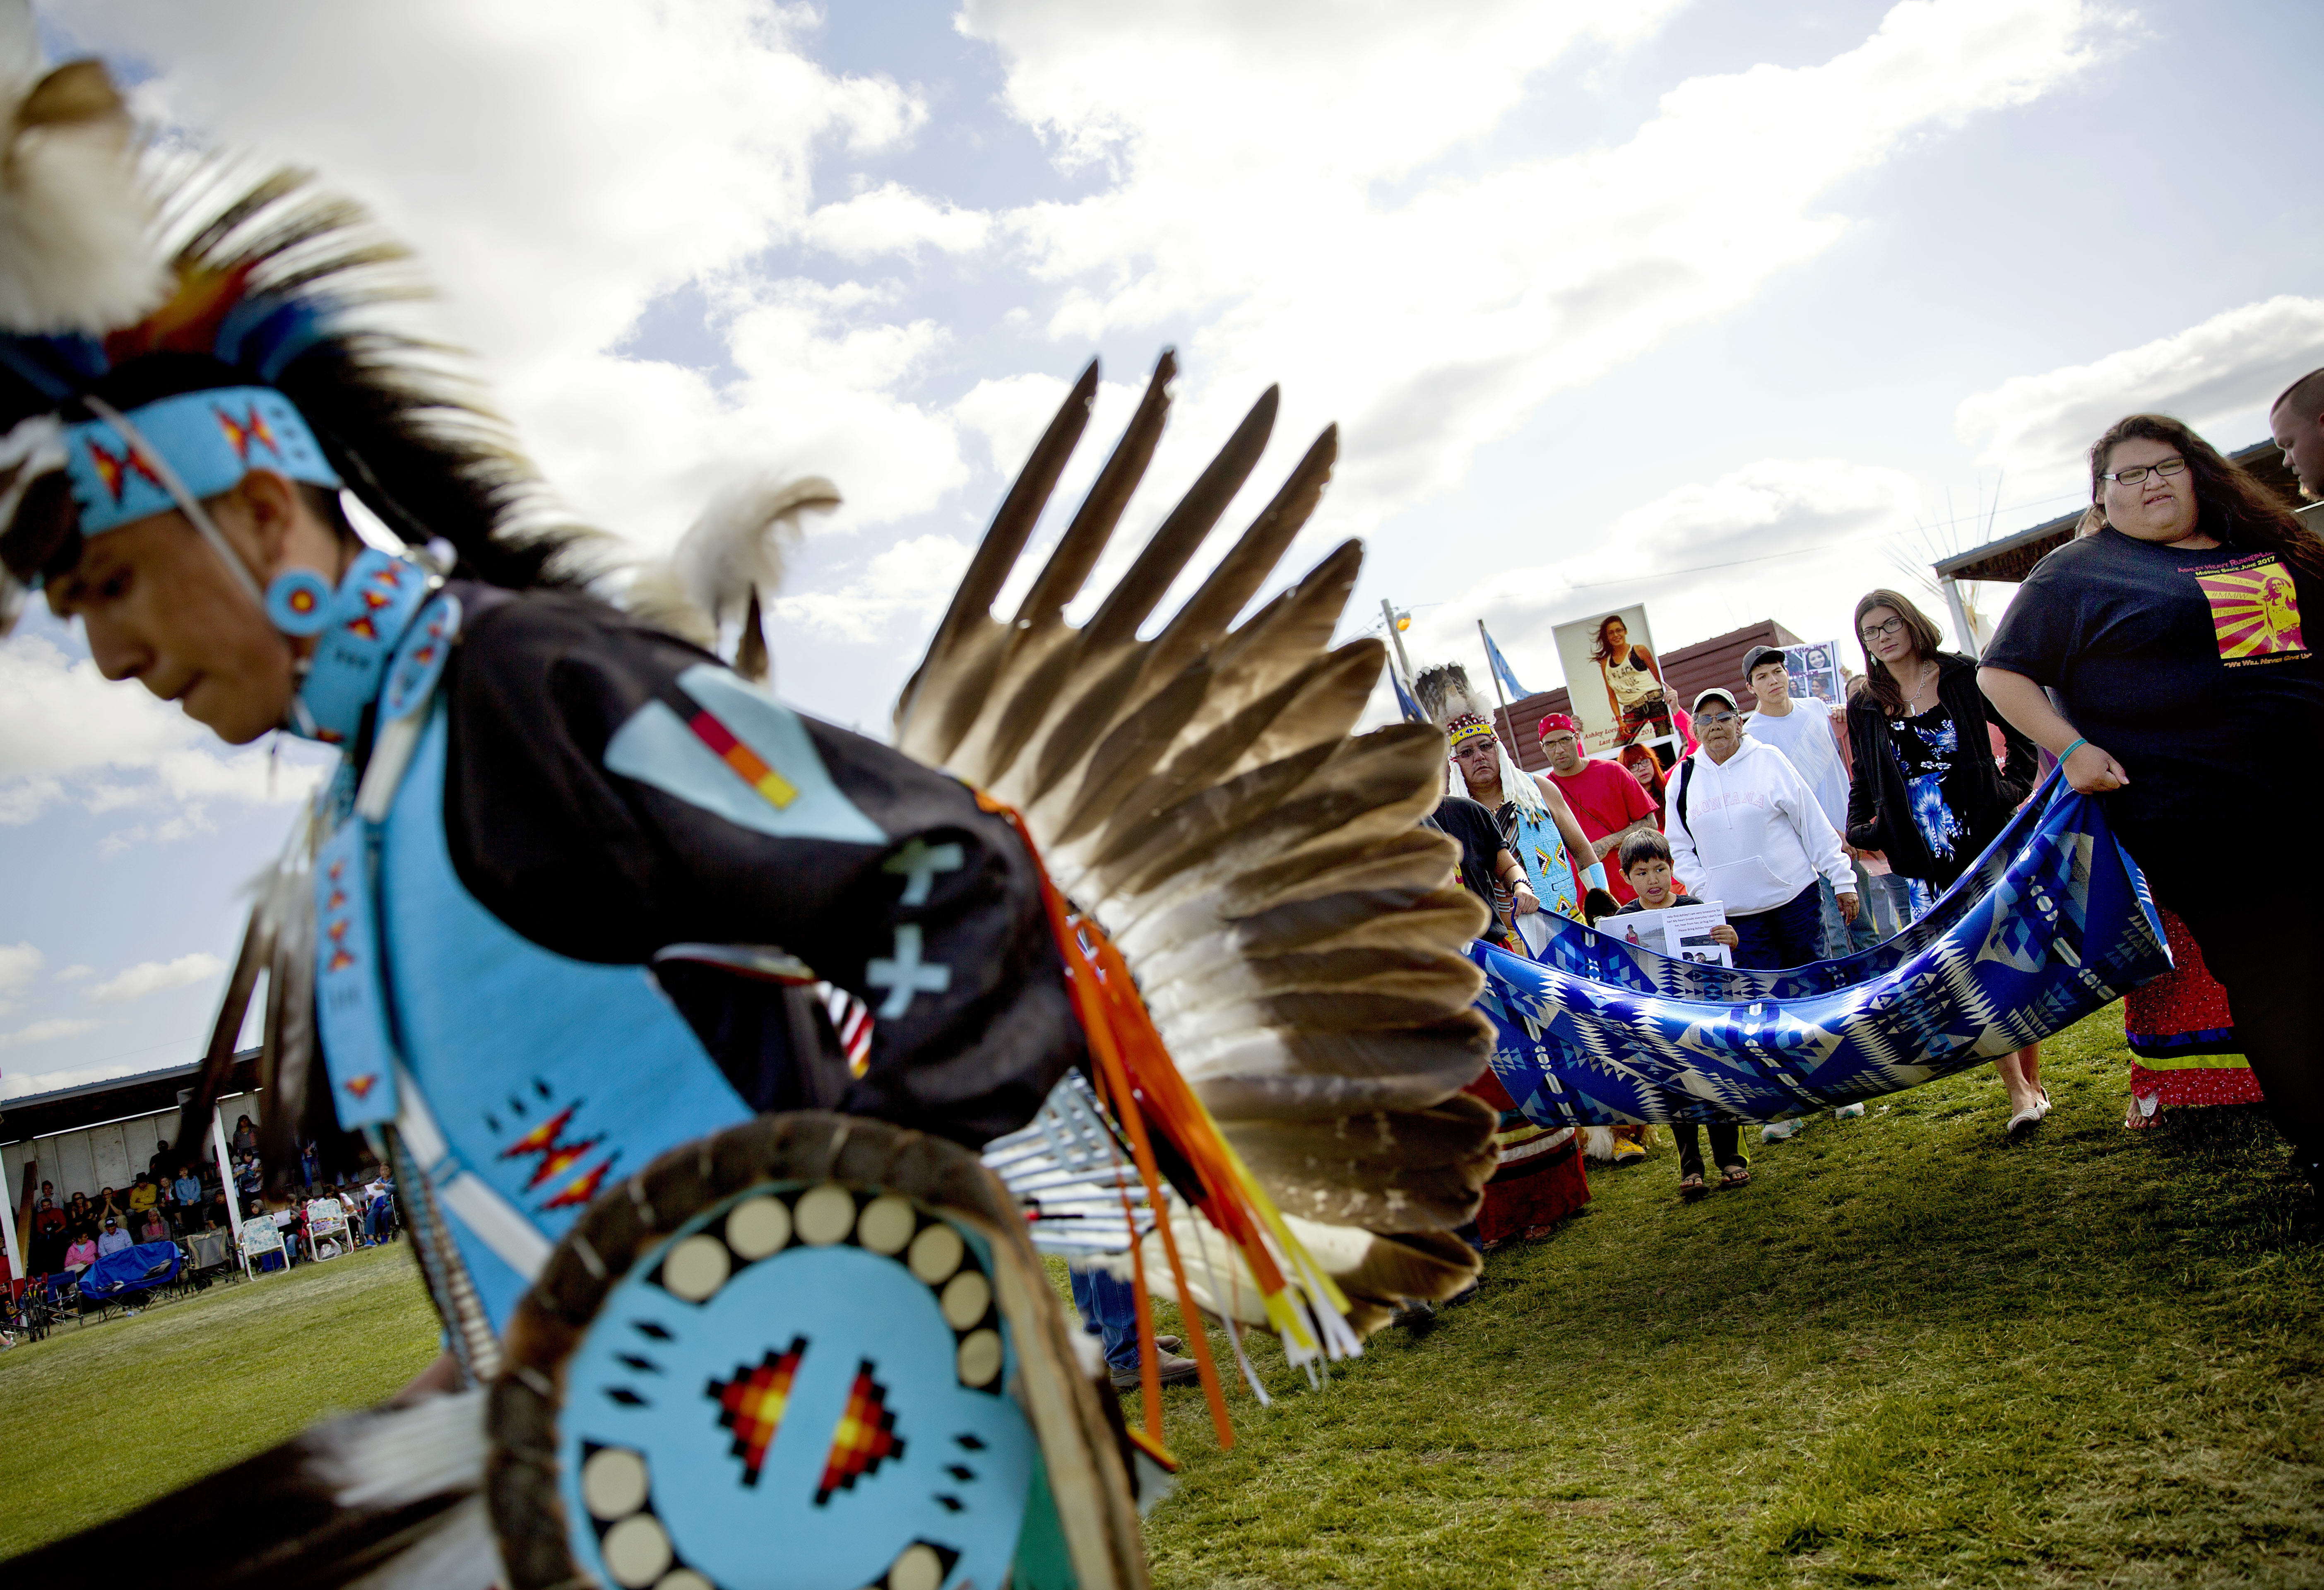 Friends and family members of Ashley HeavyRunner Loring hold a traditional blanket dance before the crowd at the North American Indian Days celebration to raise awareness and funds for her search on the Blackfeet Indian Reservation in Browning, Mont....